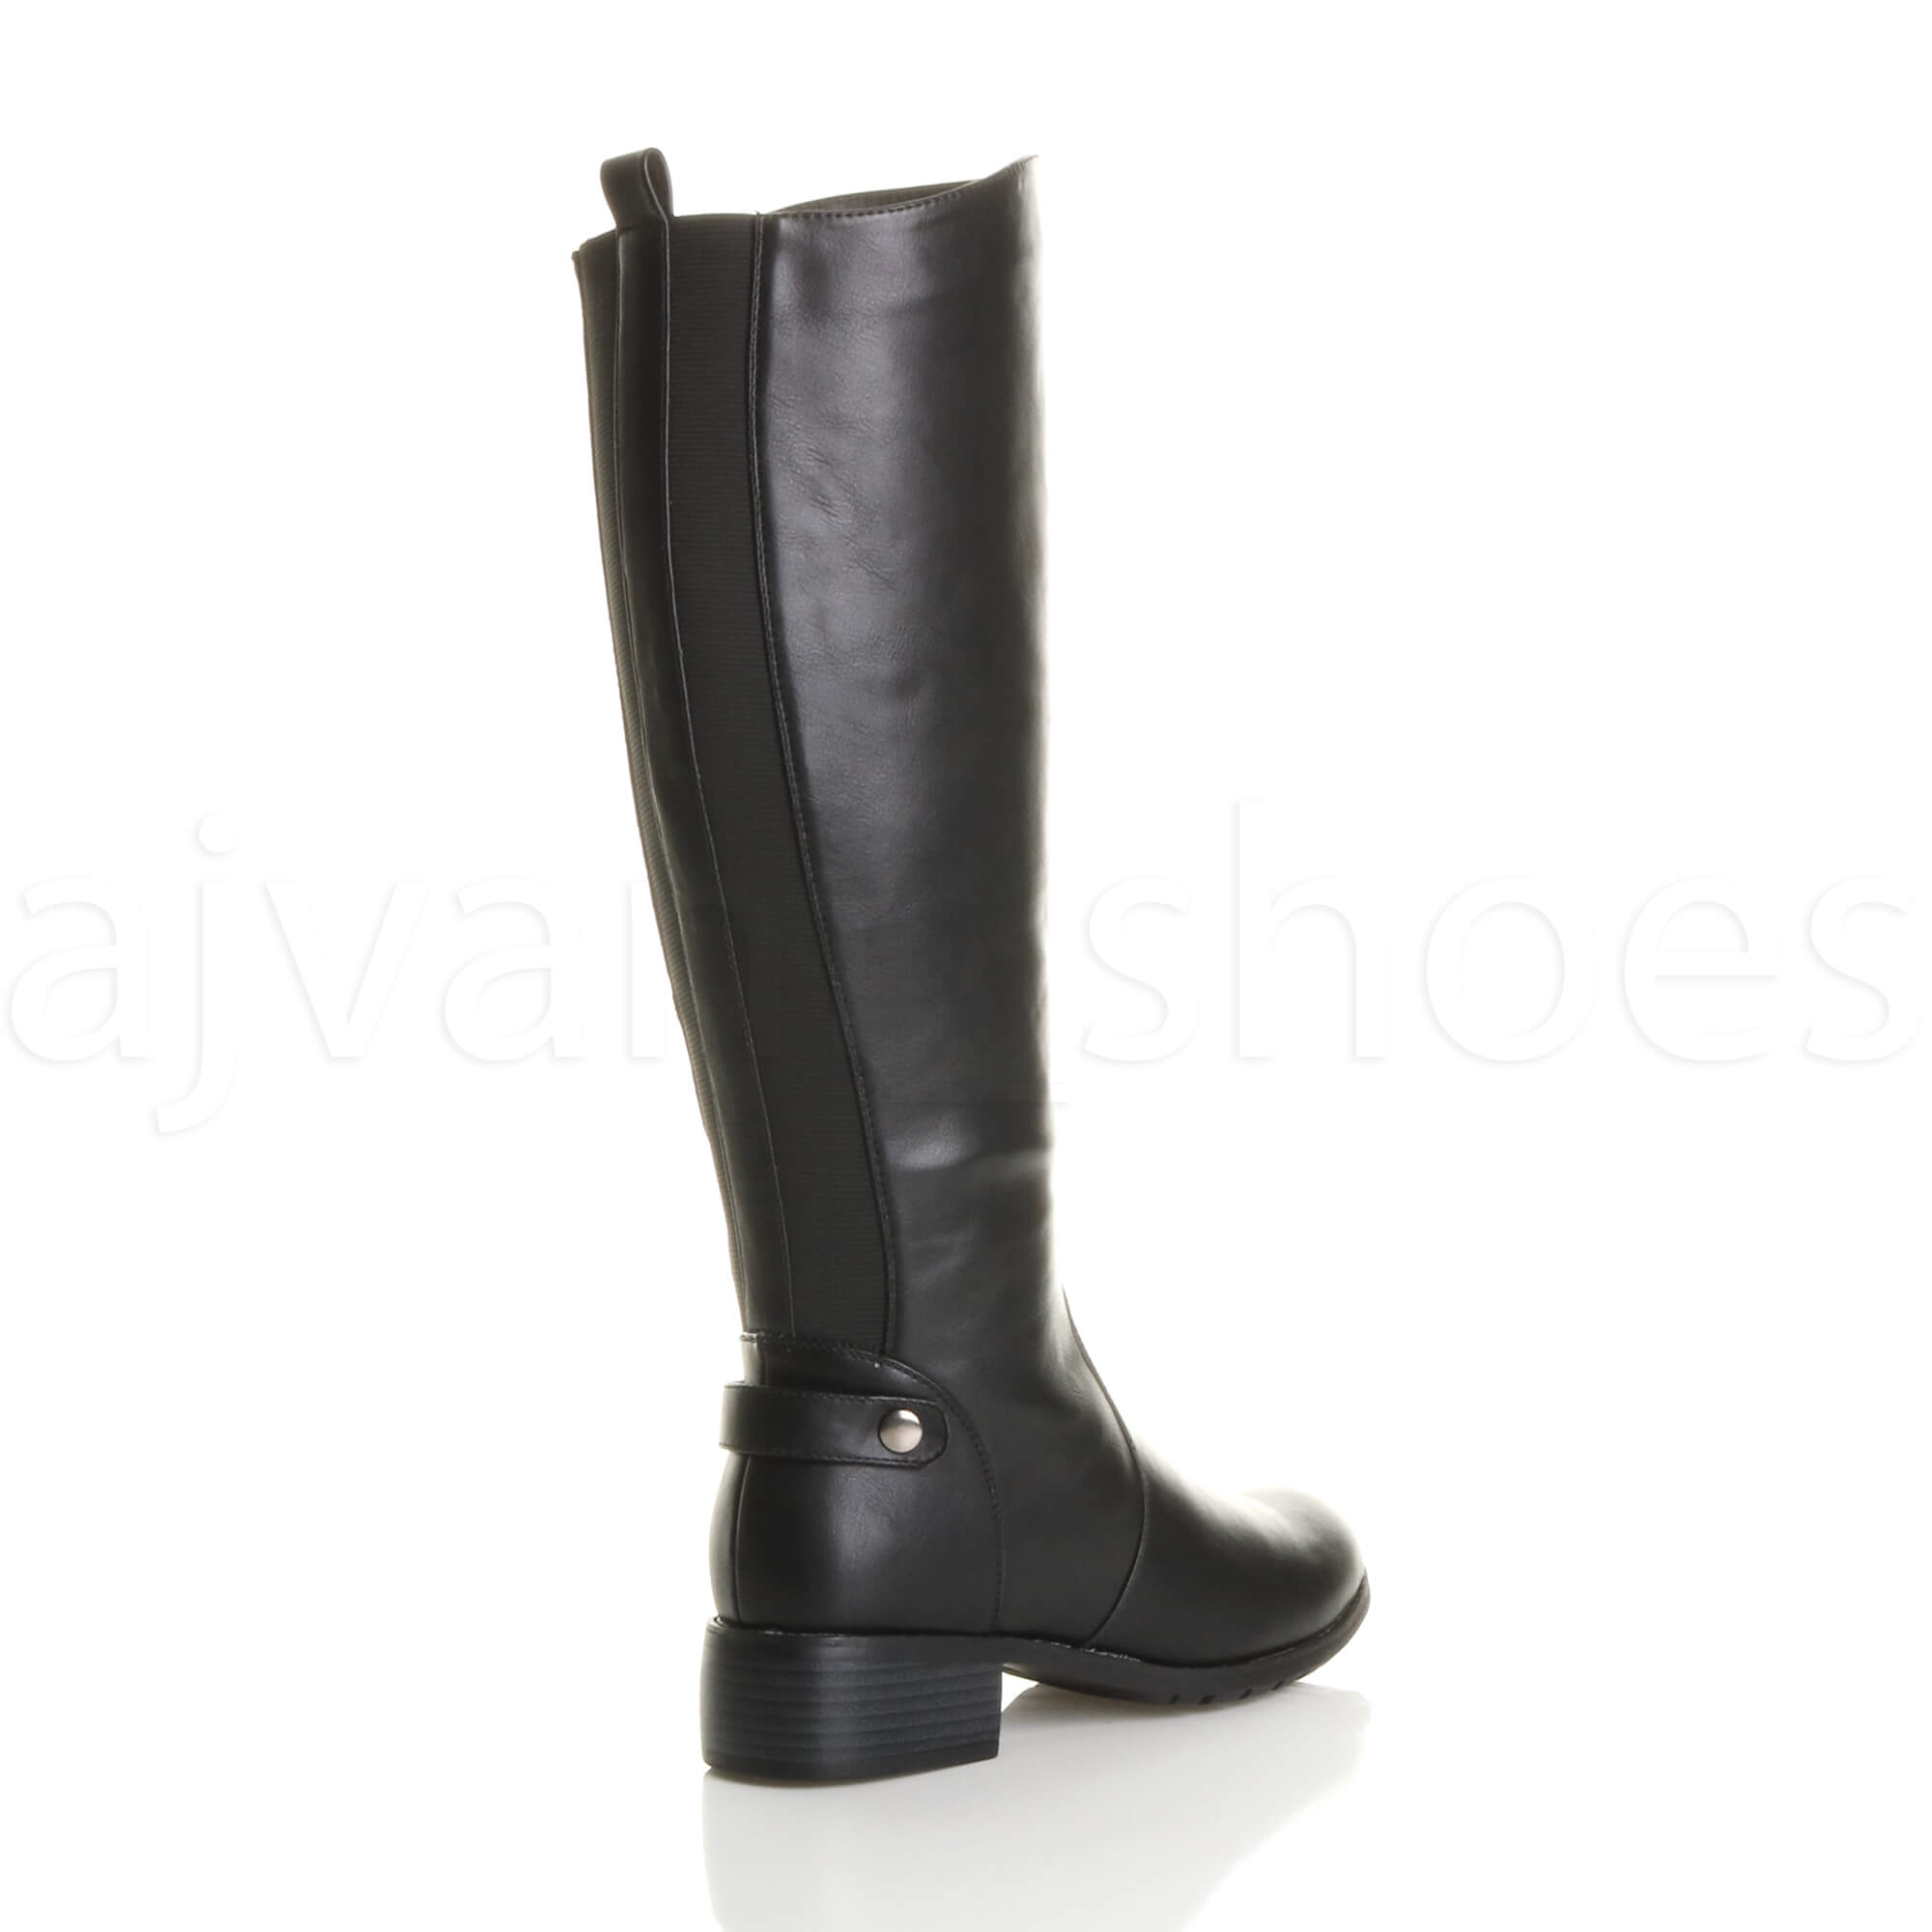 WOMENS LADIES LOW MID HEEL GUSSET STRETCH CHELSEA ZIP CALF RIDING BOOTS SIZE